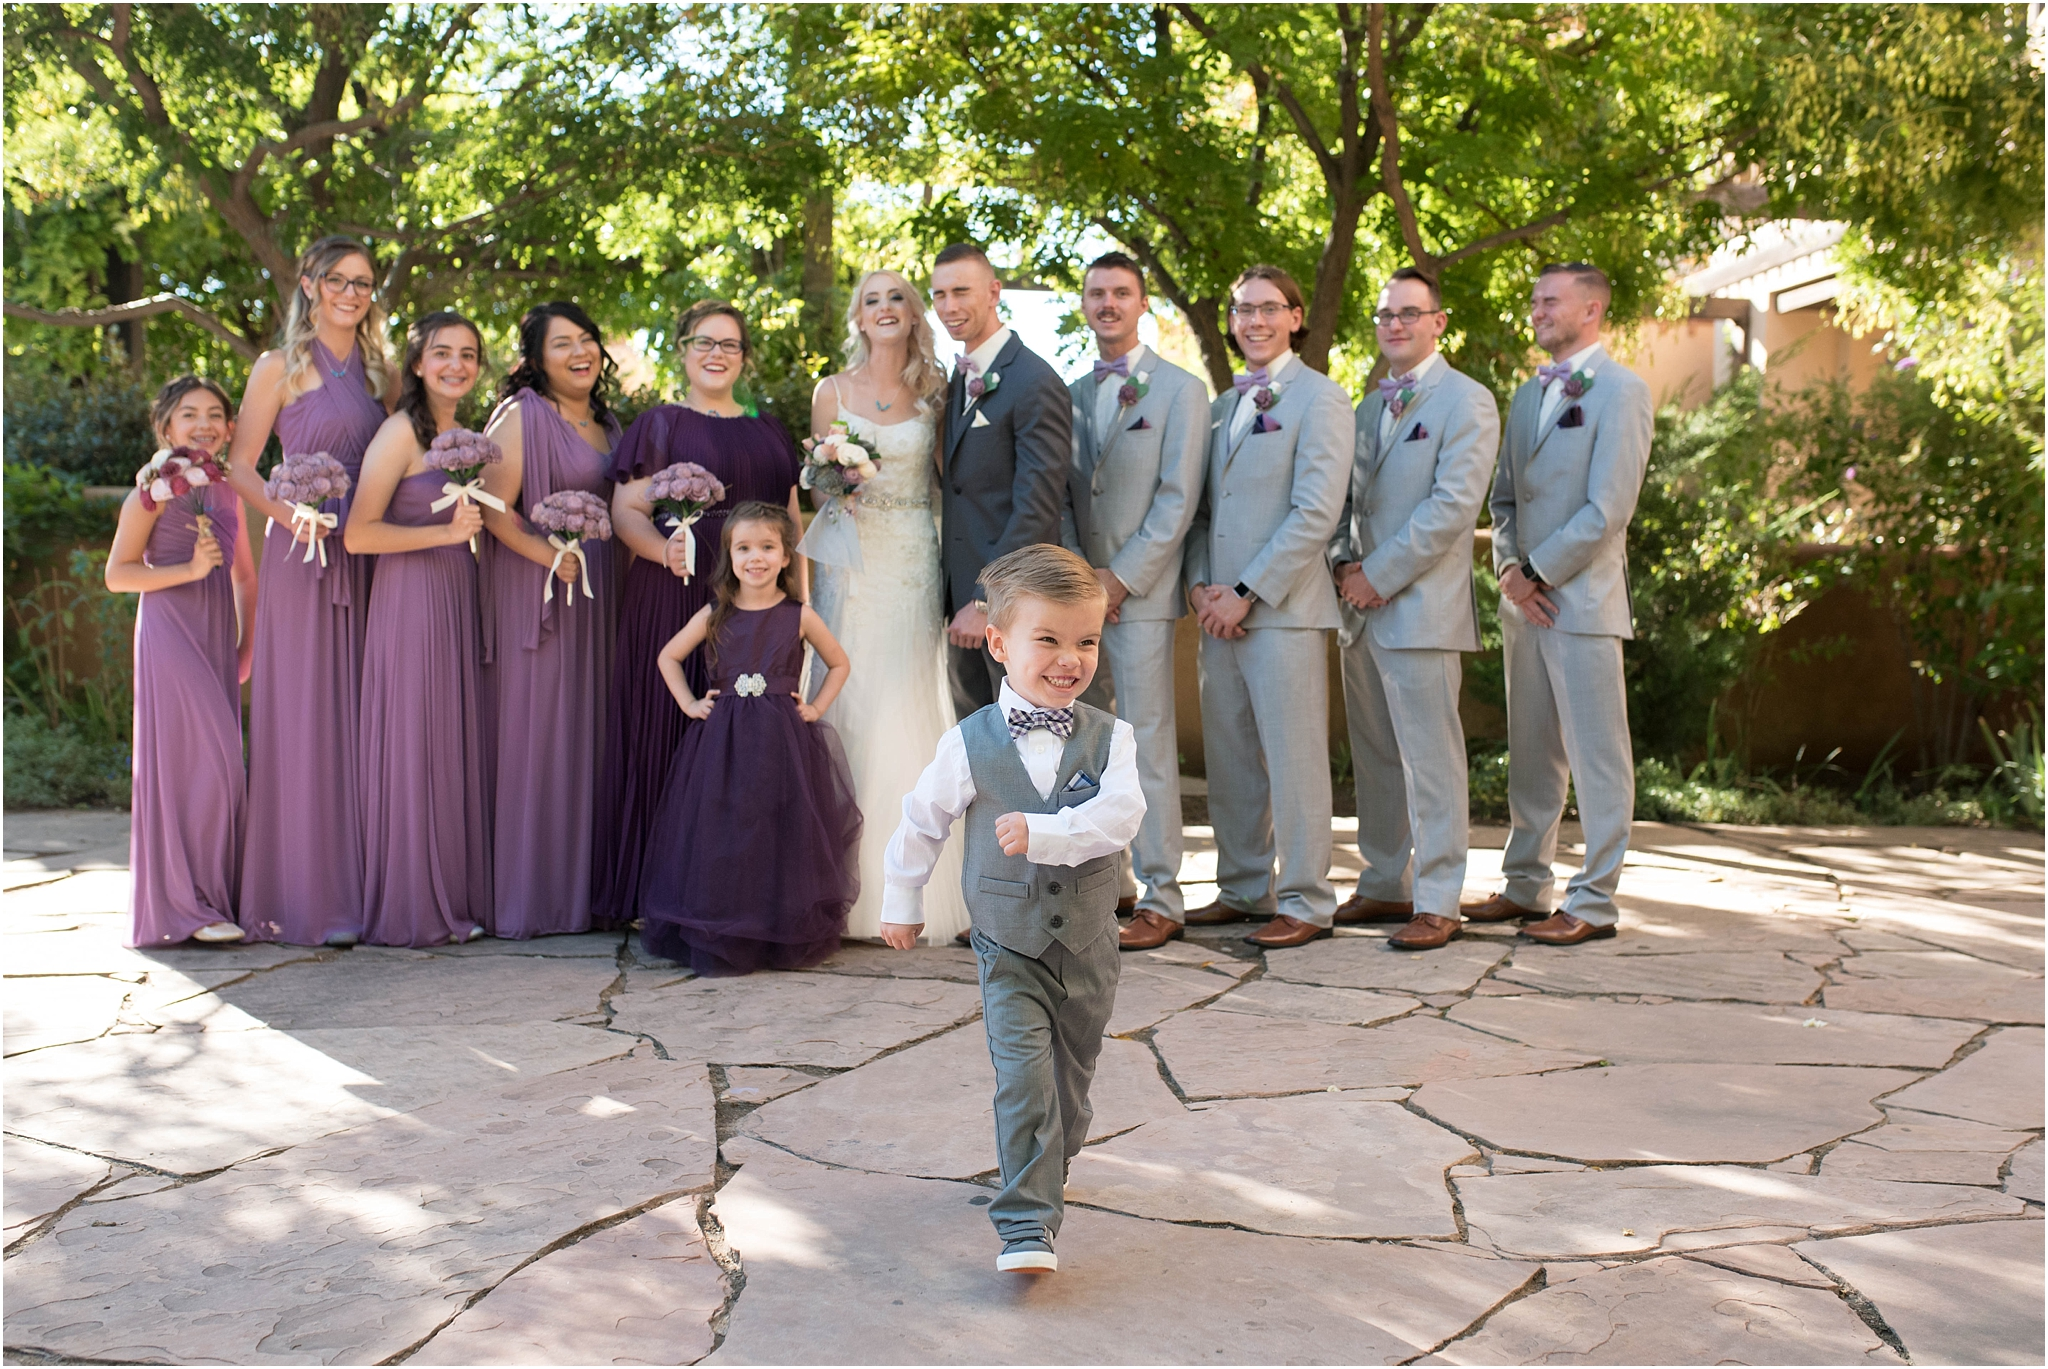 hotel-albuquerque-wedding-photographer-ceremony-wedding-party-purple-grey-suits-bridesmaids-courtyard-chaco-venue